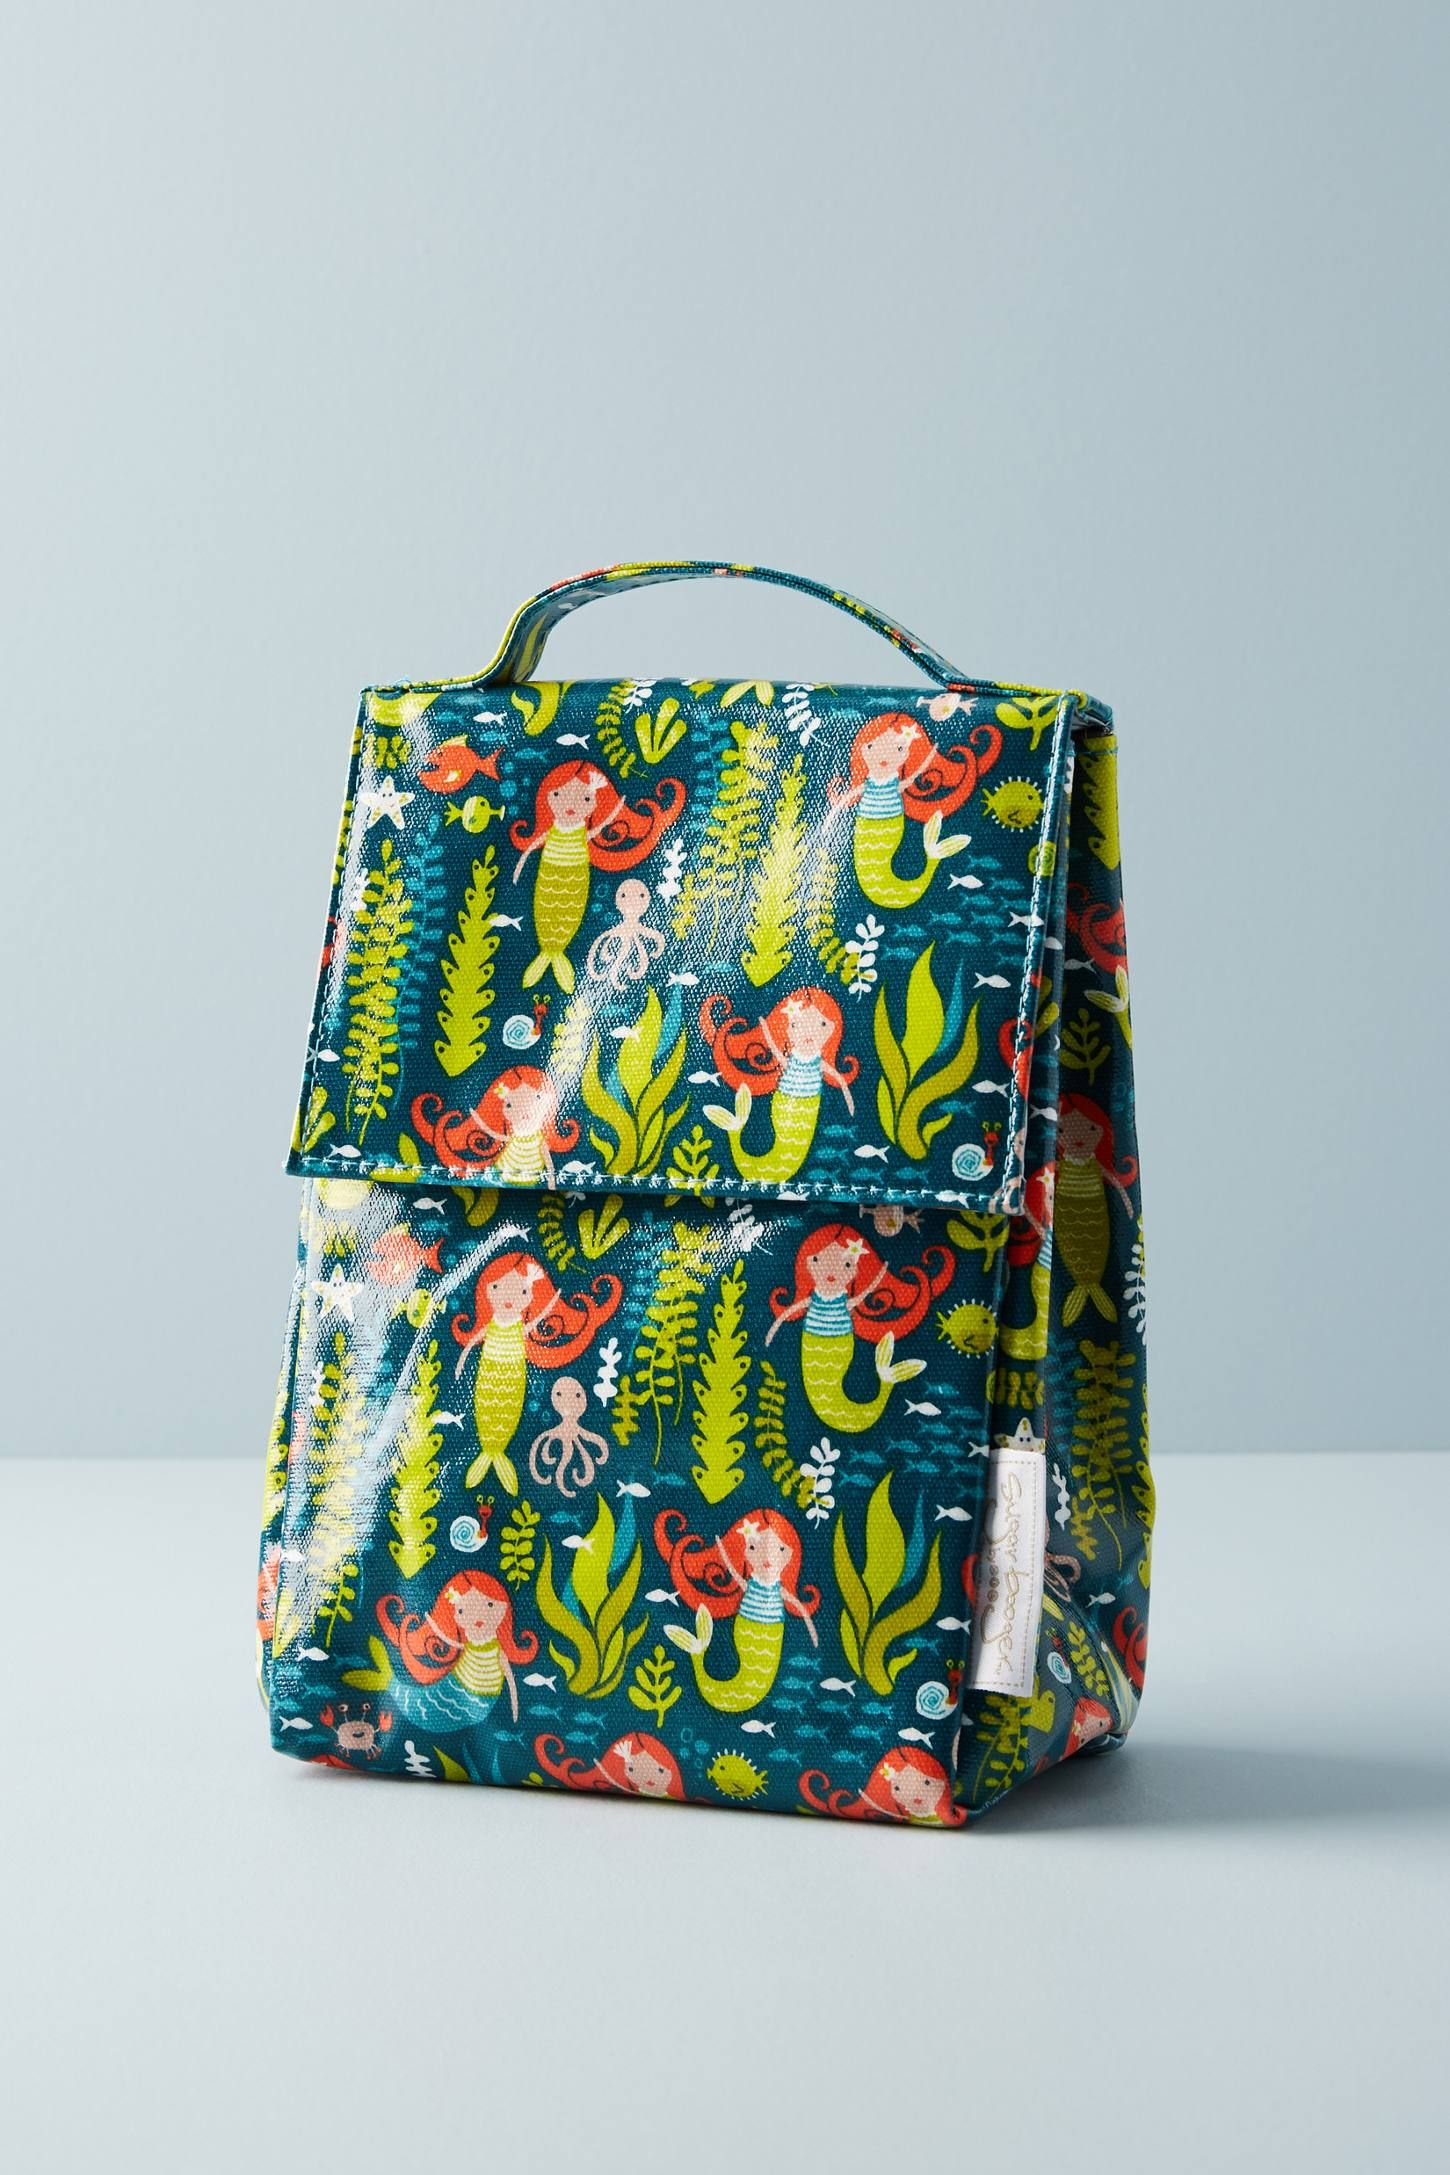 e874e0597812 Insulated Lunch Sack | Mermaid Life | Kids lunch bags, Insulated ...